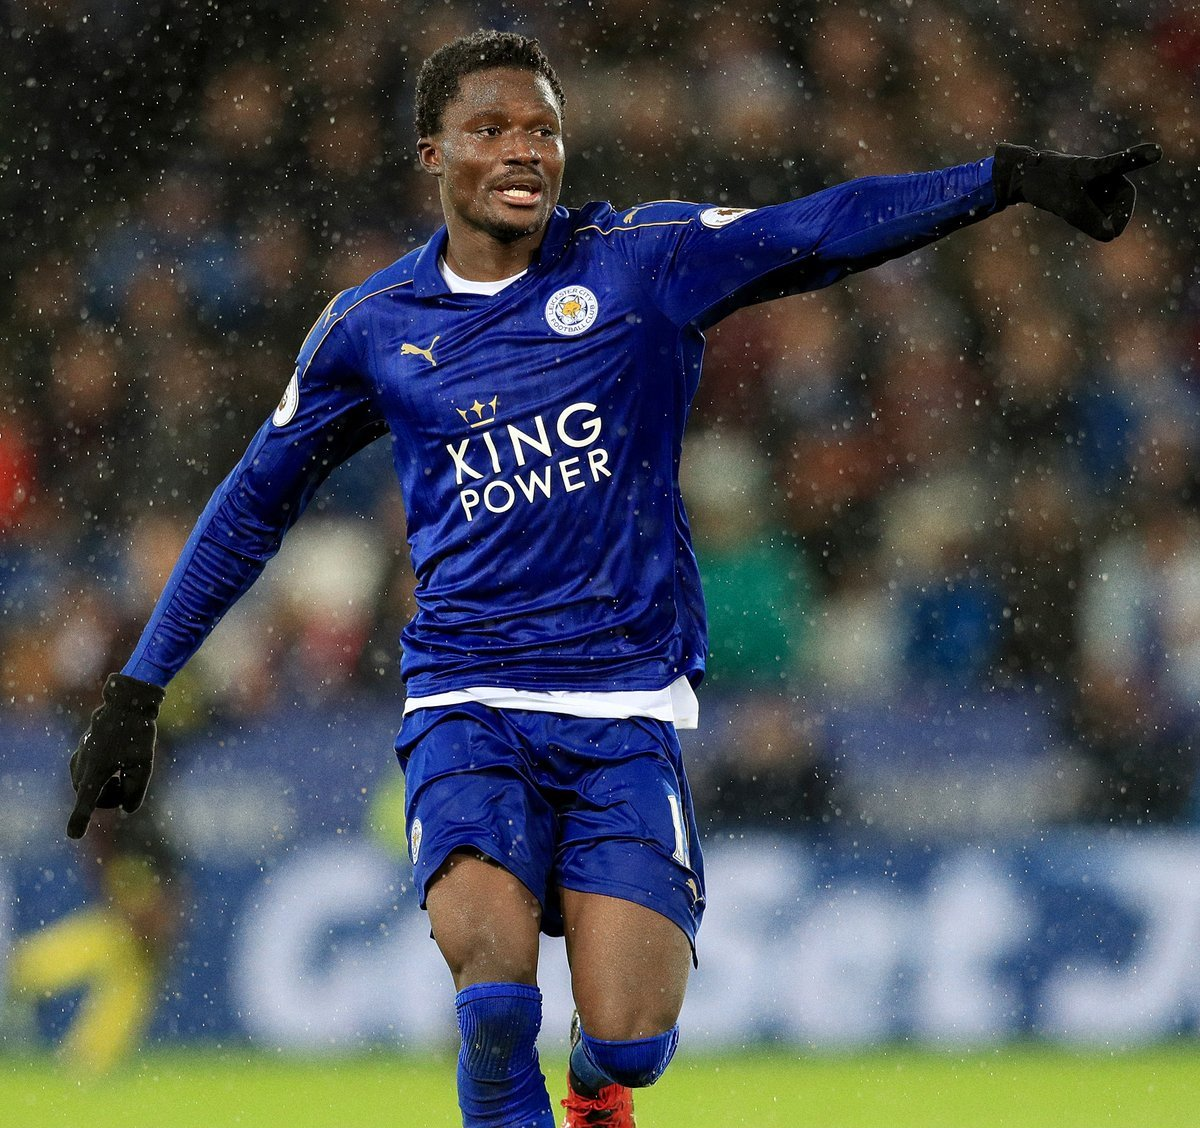 Aston Villa could miss out on Daniel Amartey after defender's revival at Leicester City